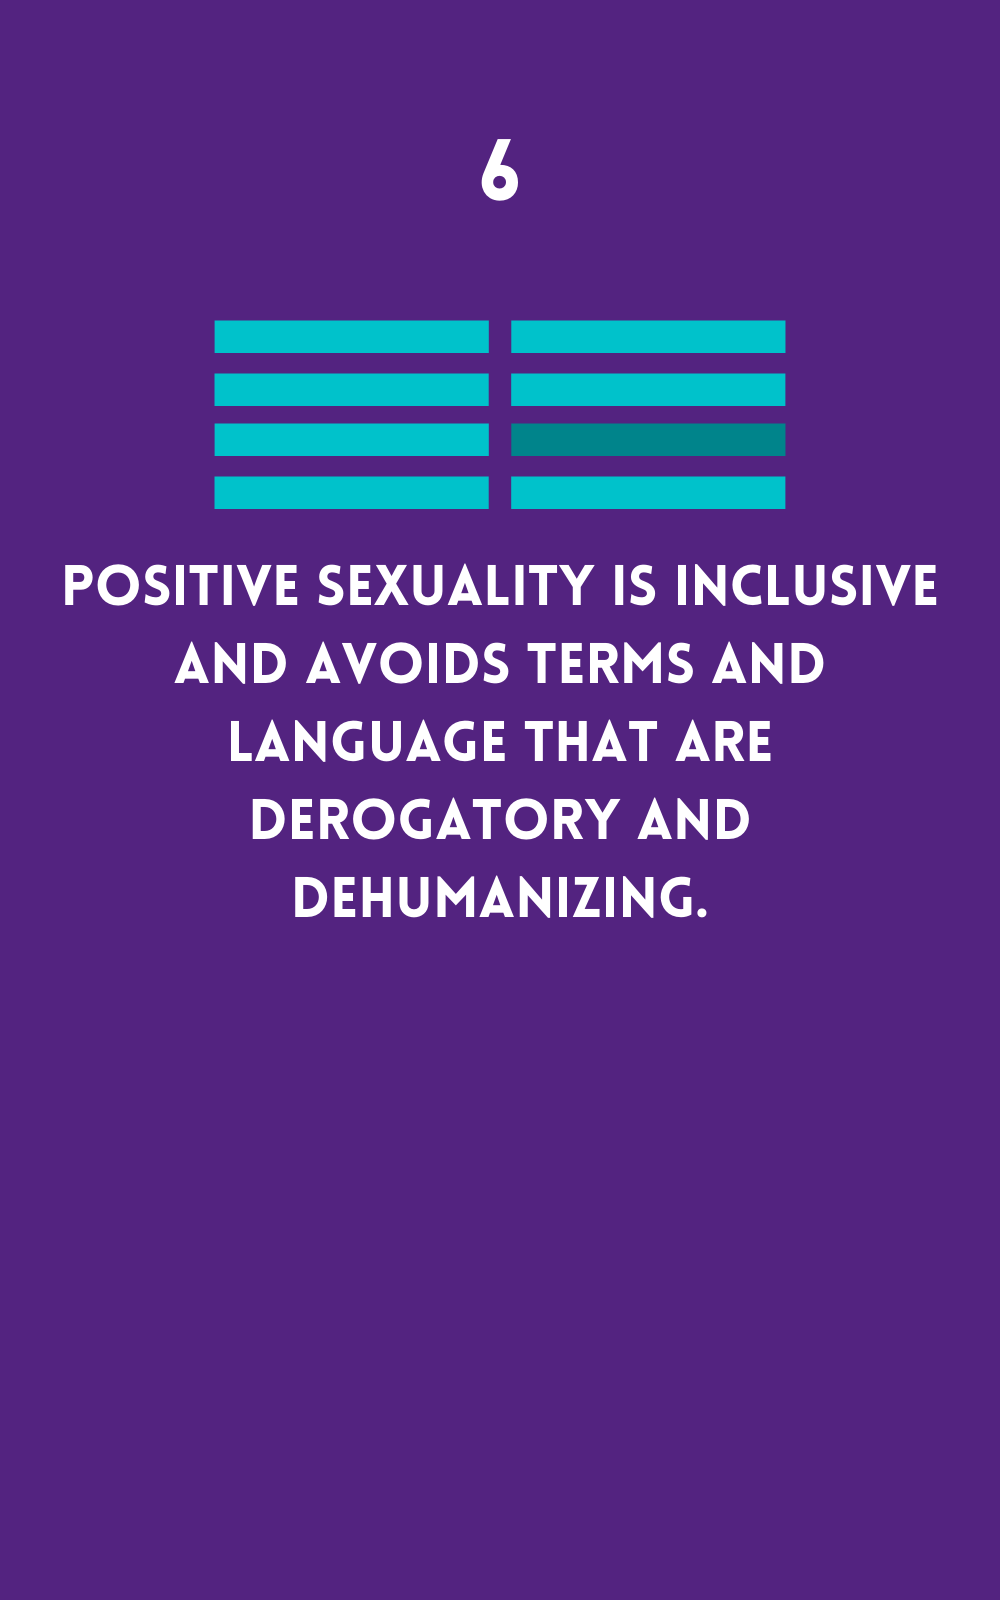 Positive Sexuality is inclusive and uses humanizing language